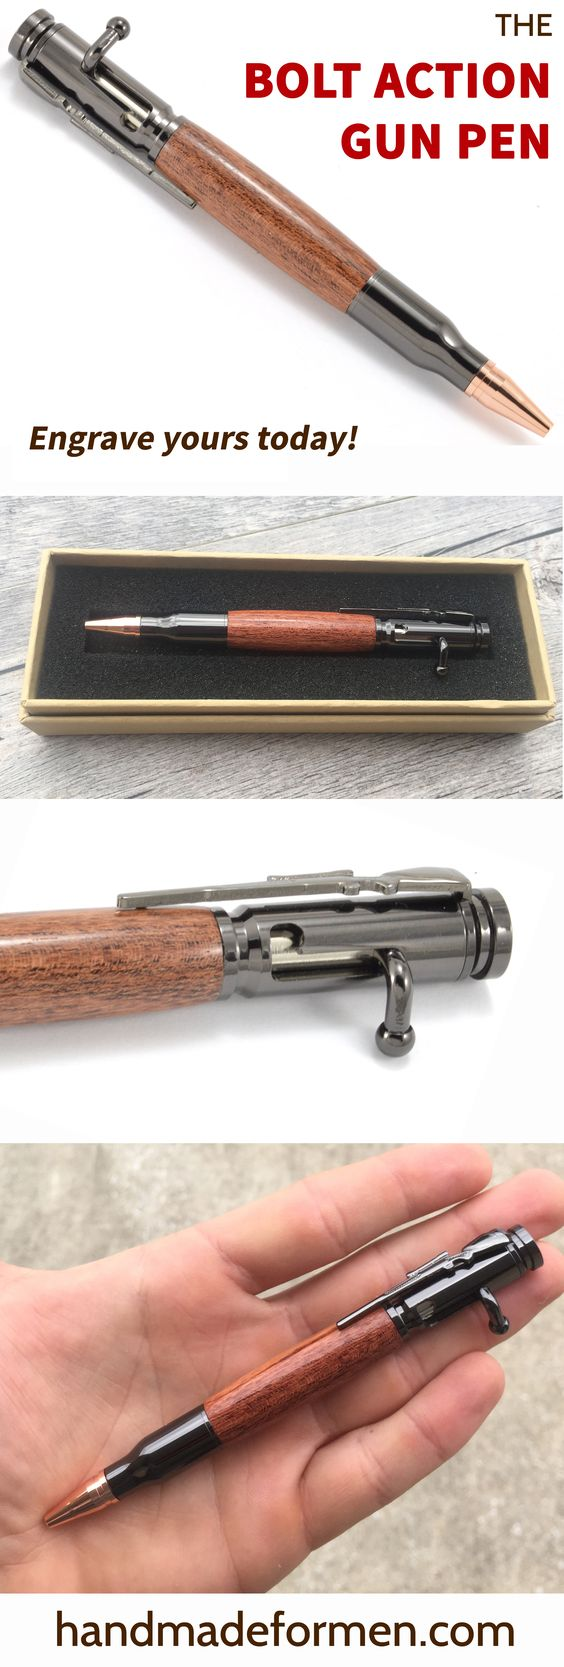 Great Father's Day Gift Ideas! This American made bolt action pen is the perfect gift for him. $39 or add engraving for just $10! See them all at handmadeformen.com